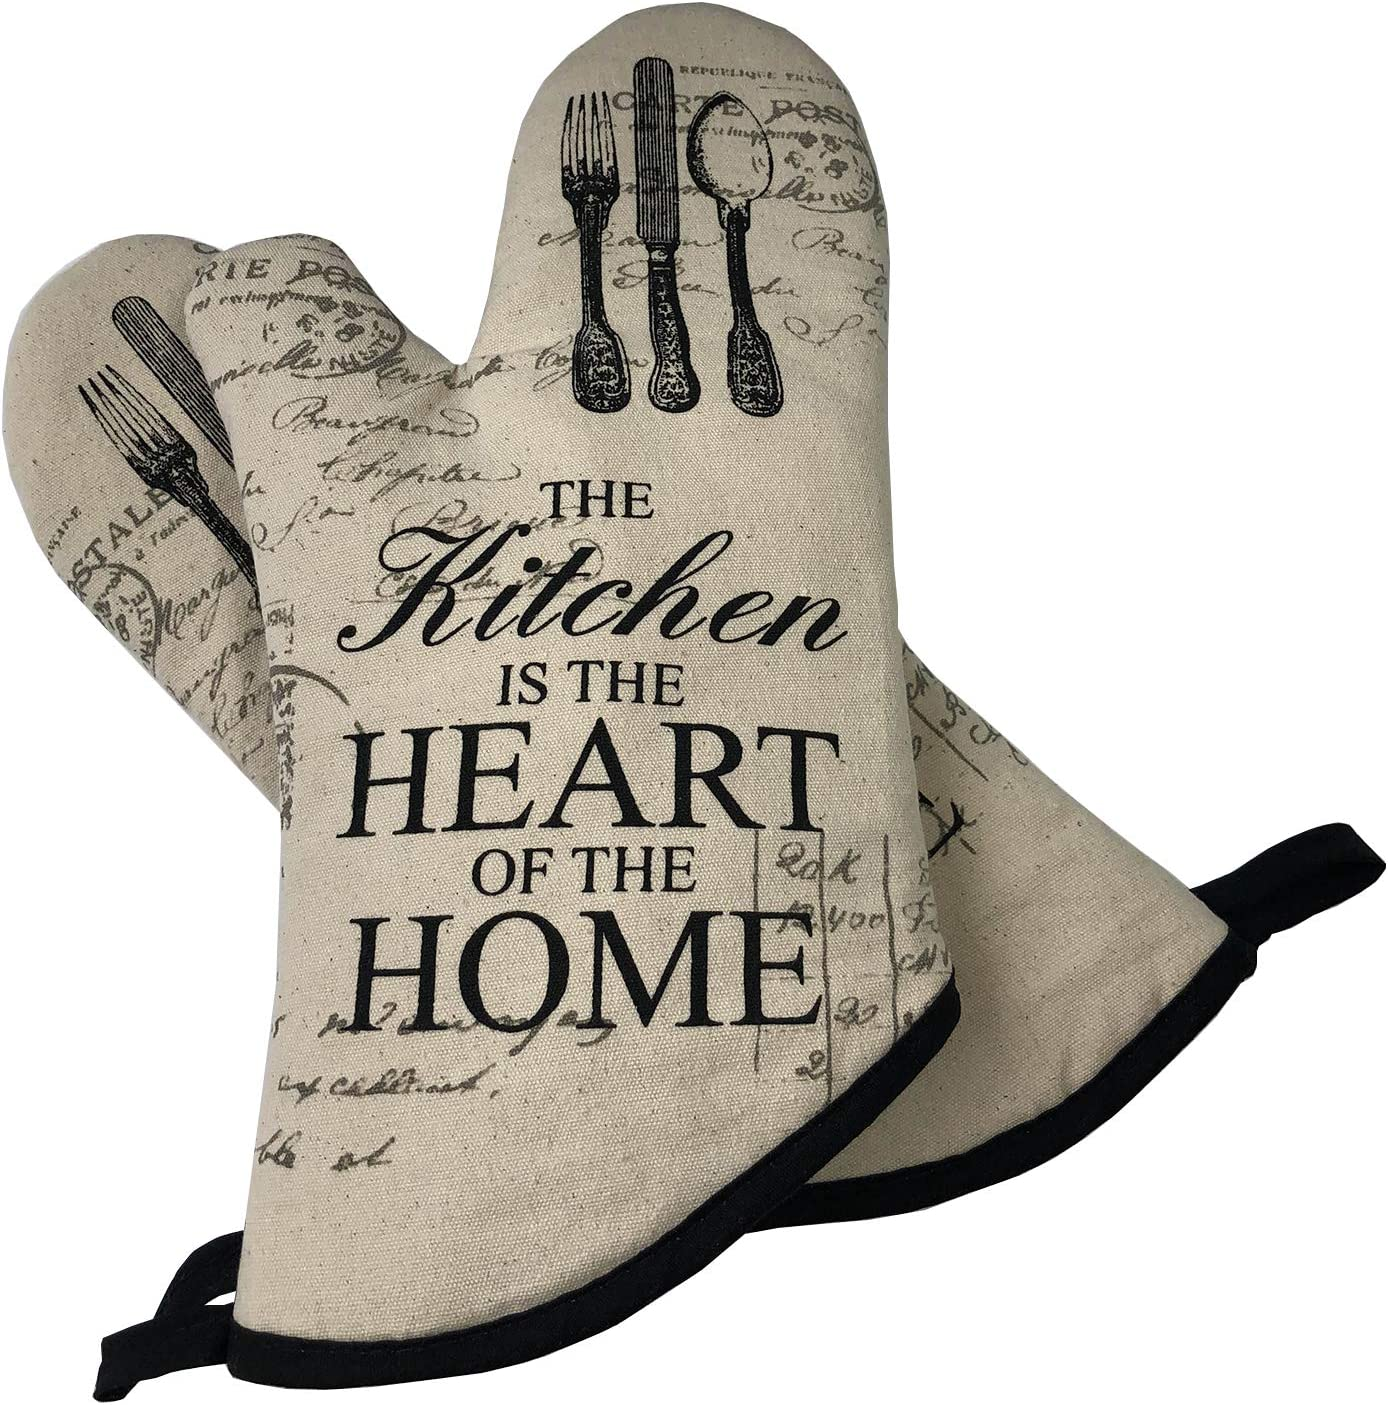 AIYUE Oven Mitts Thick Cotton Kitchen Oven mitt | Funny Cat Oven Gloves with Long Sleeves | Heat Resistant to 482 °F | Machine Washable | Suitable for Cooking Baking BBQ